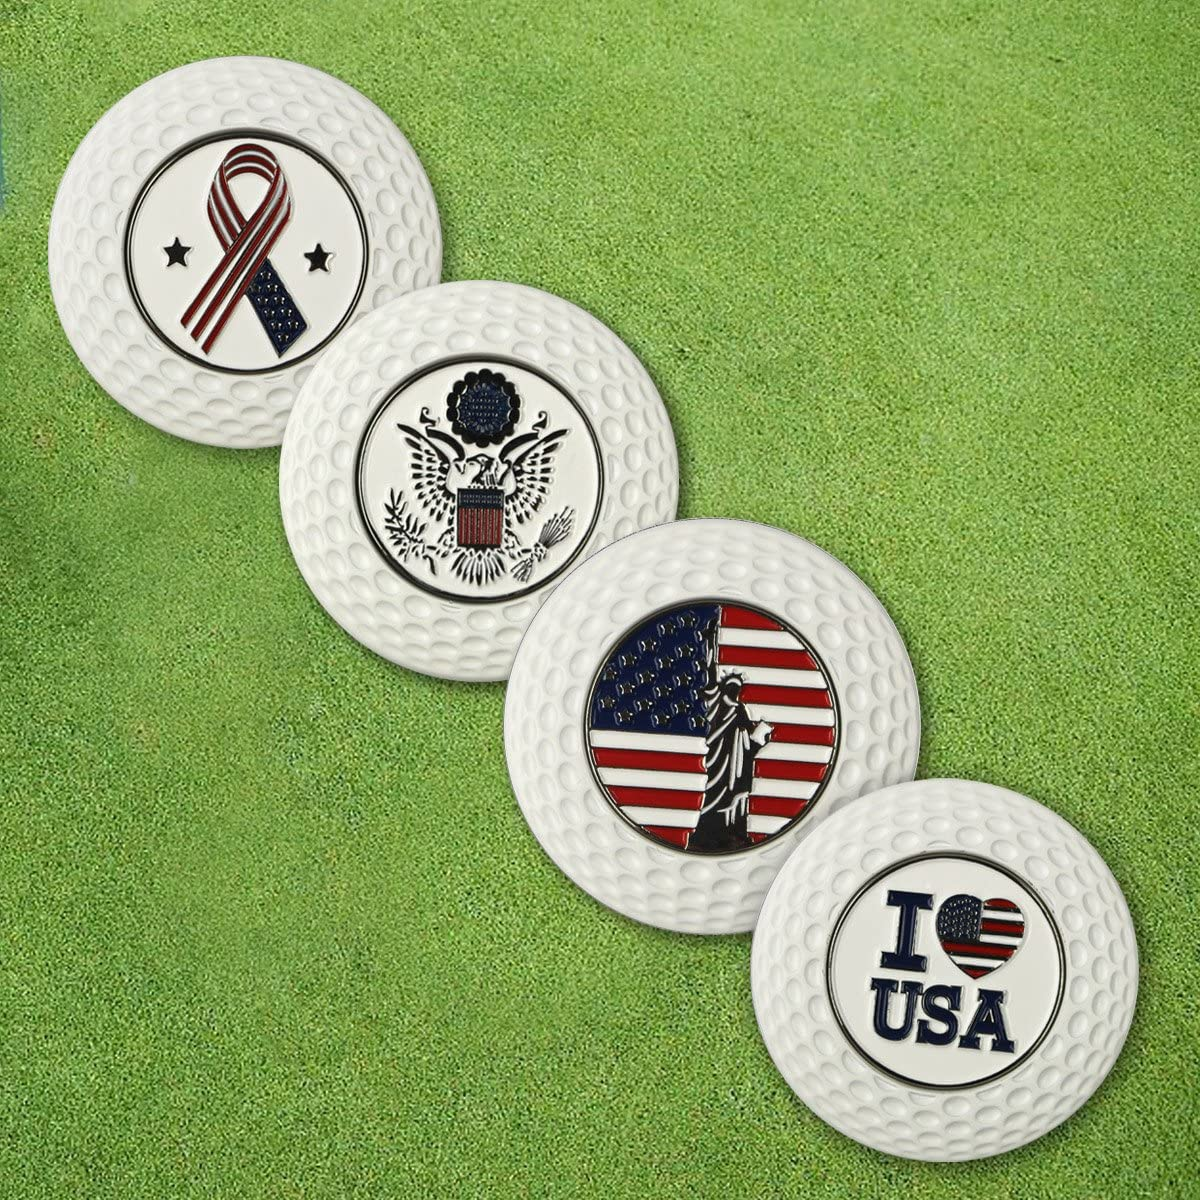 PINMEI Metal Magnetic Golf Poker Chip Online limited product Ball Markers Indefinitely Gif